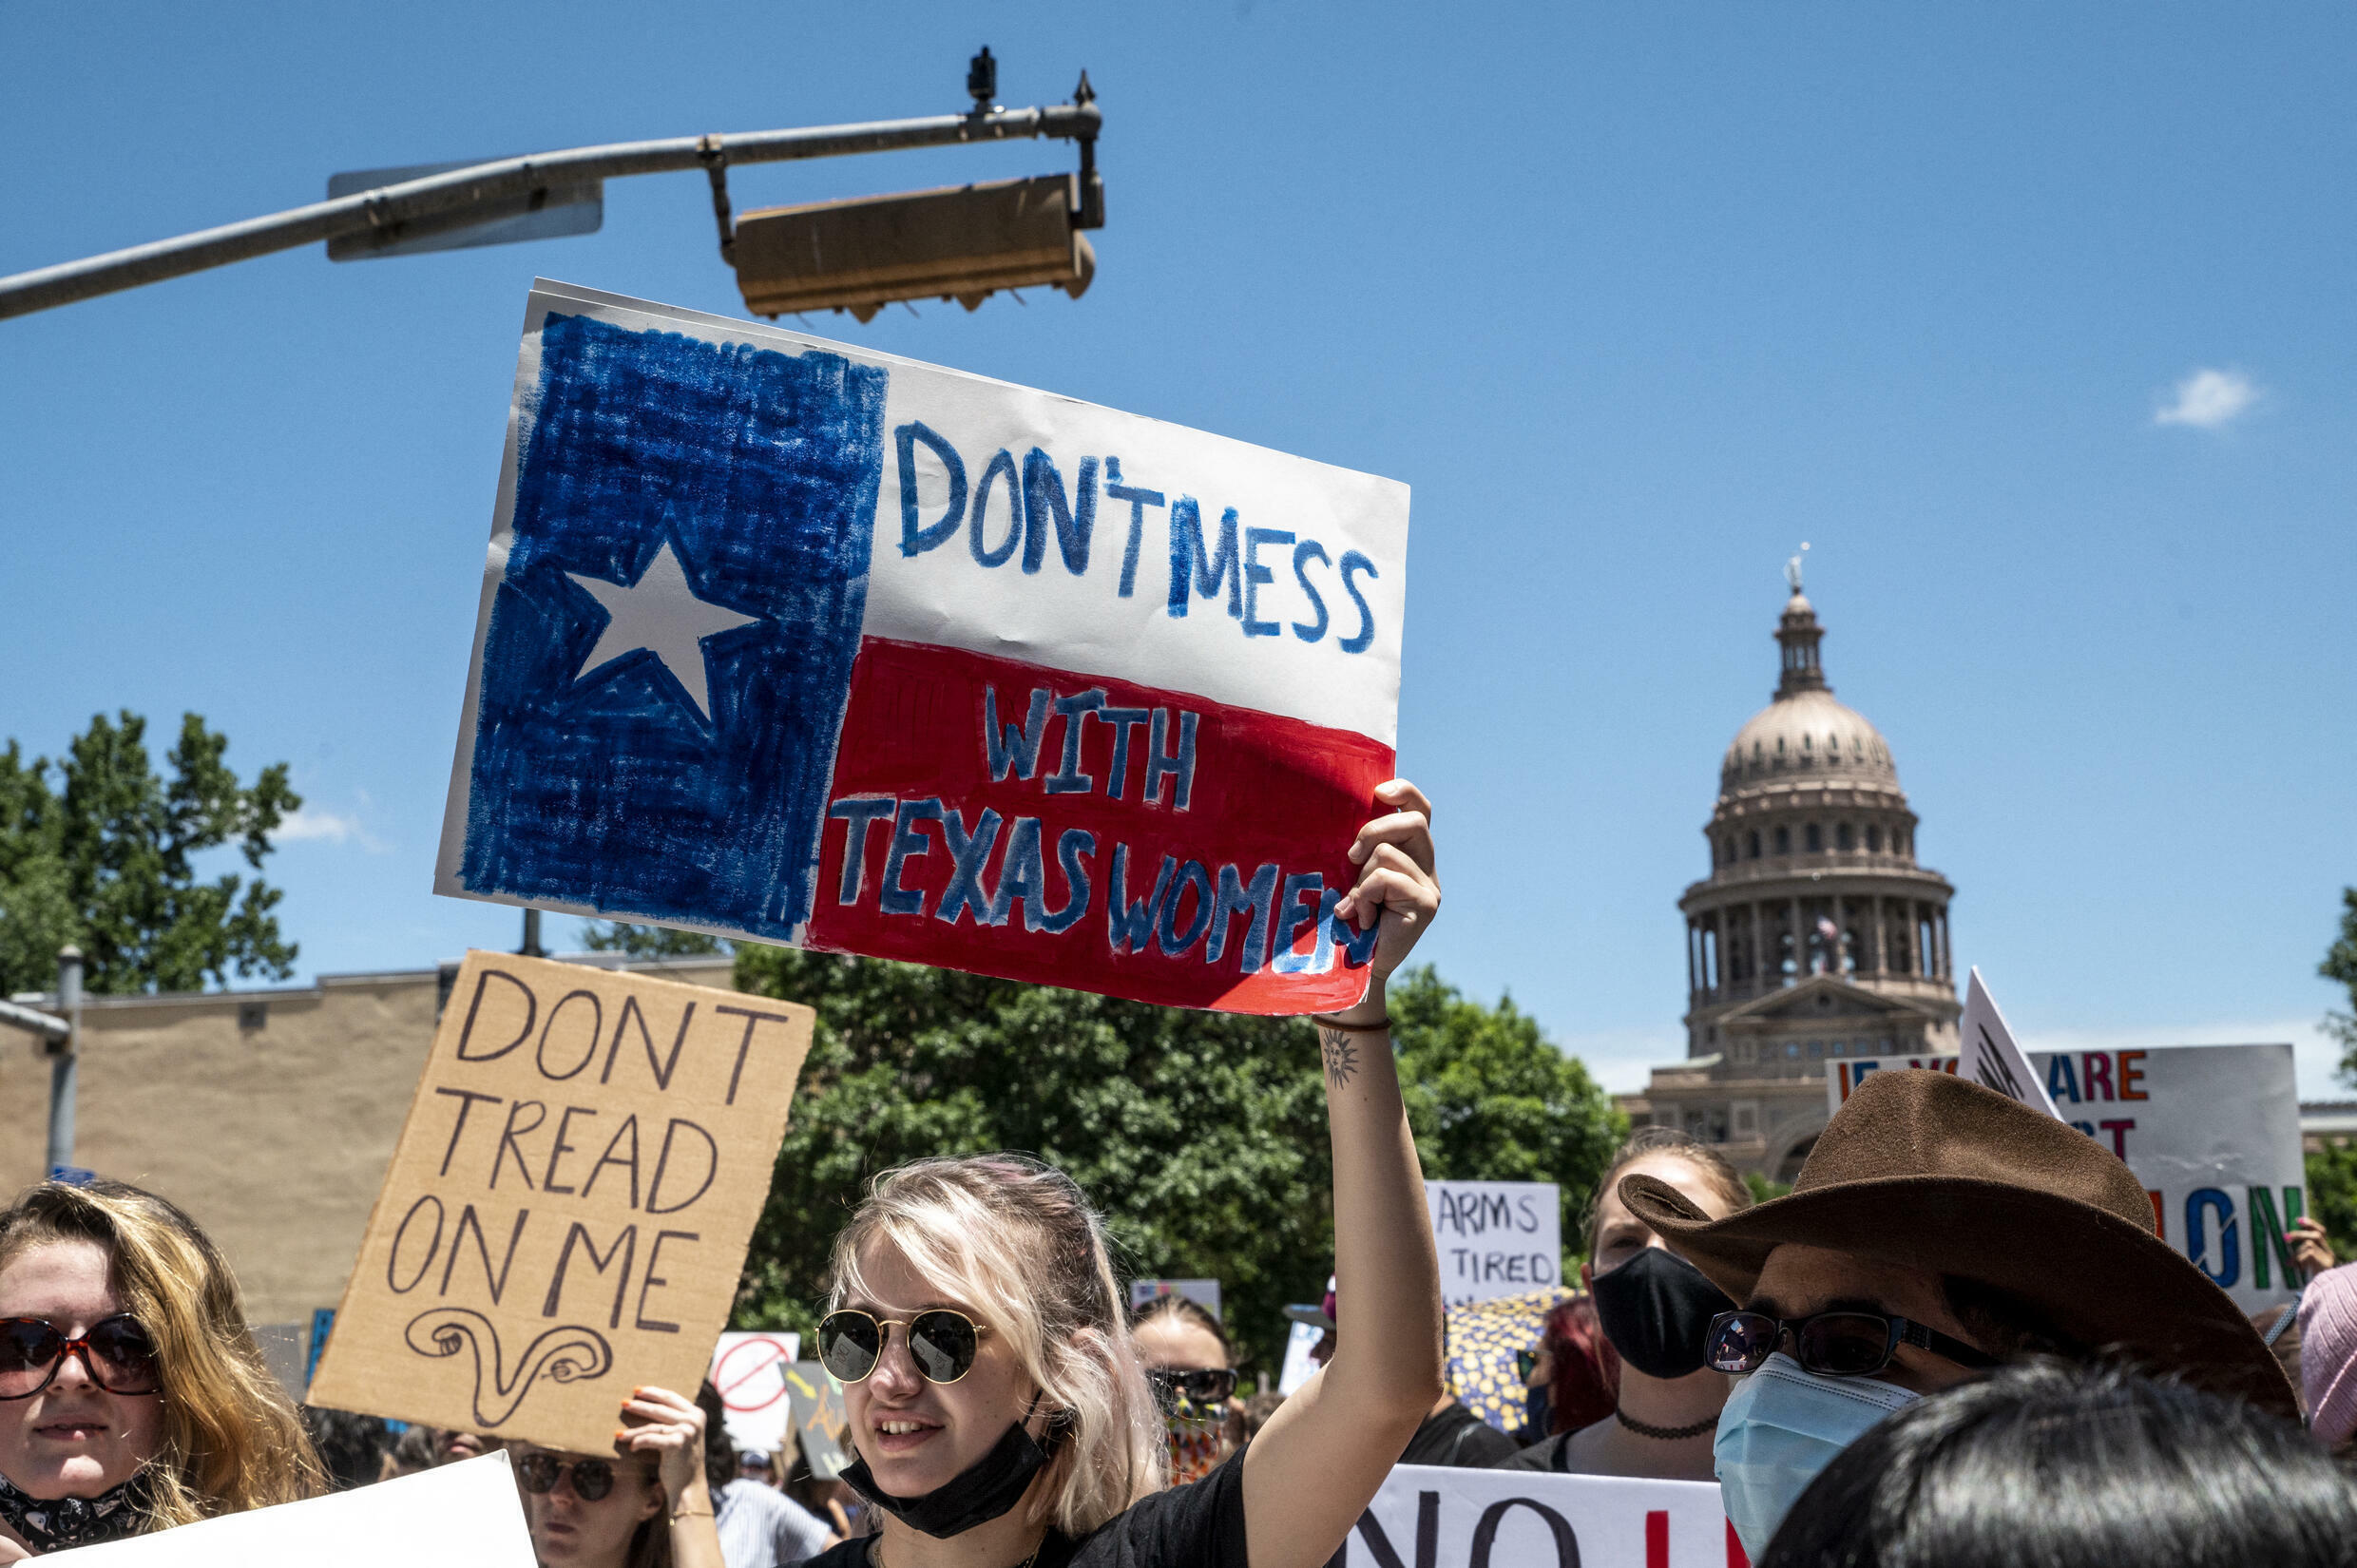 070921-texas-abortion-protest-site-m